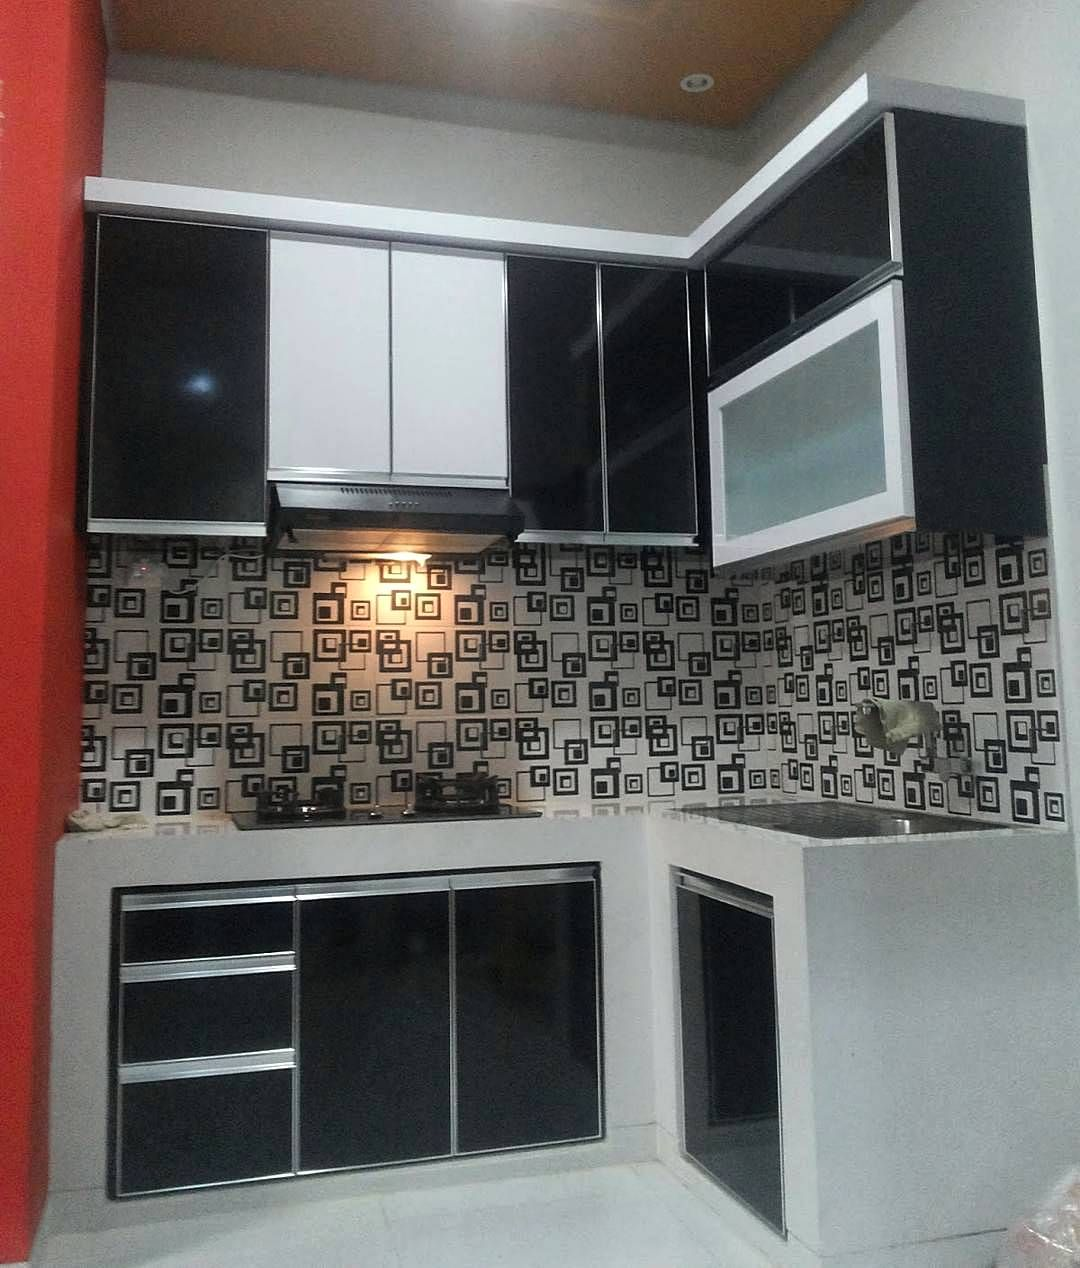 Kitchen Set Murah Sederhana Model Dapur Desain Desain Dapur